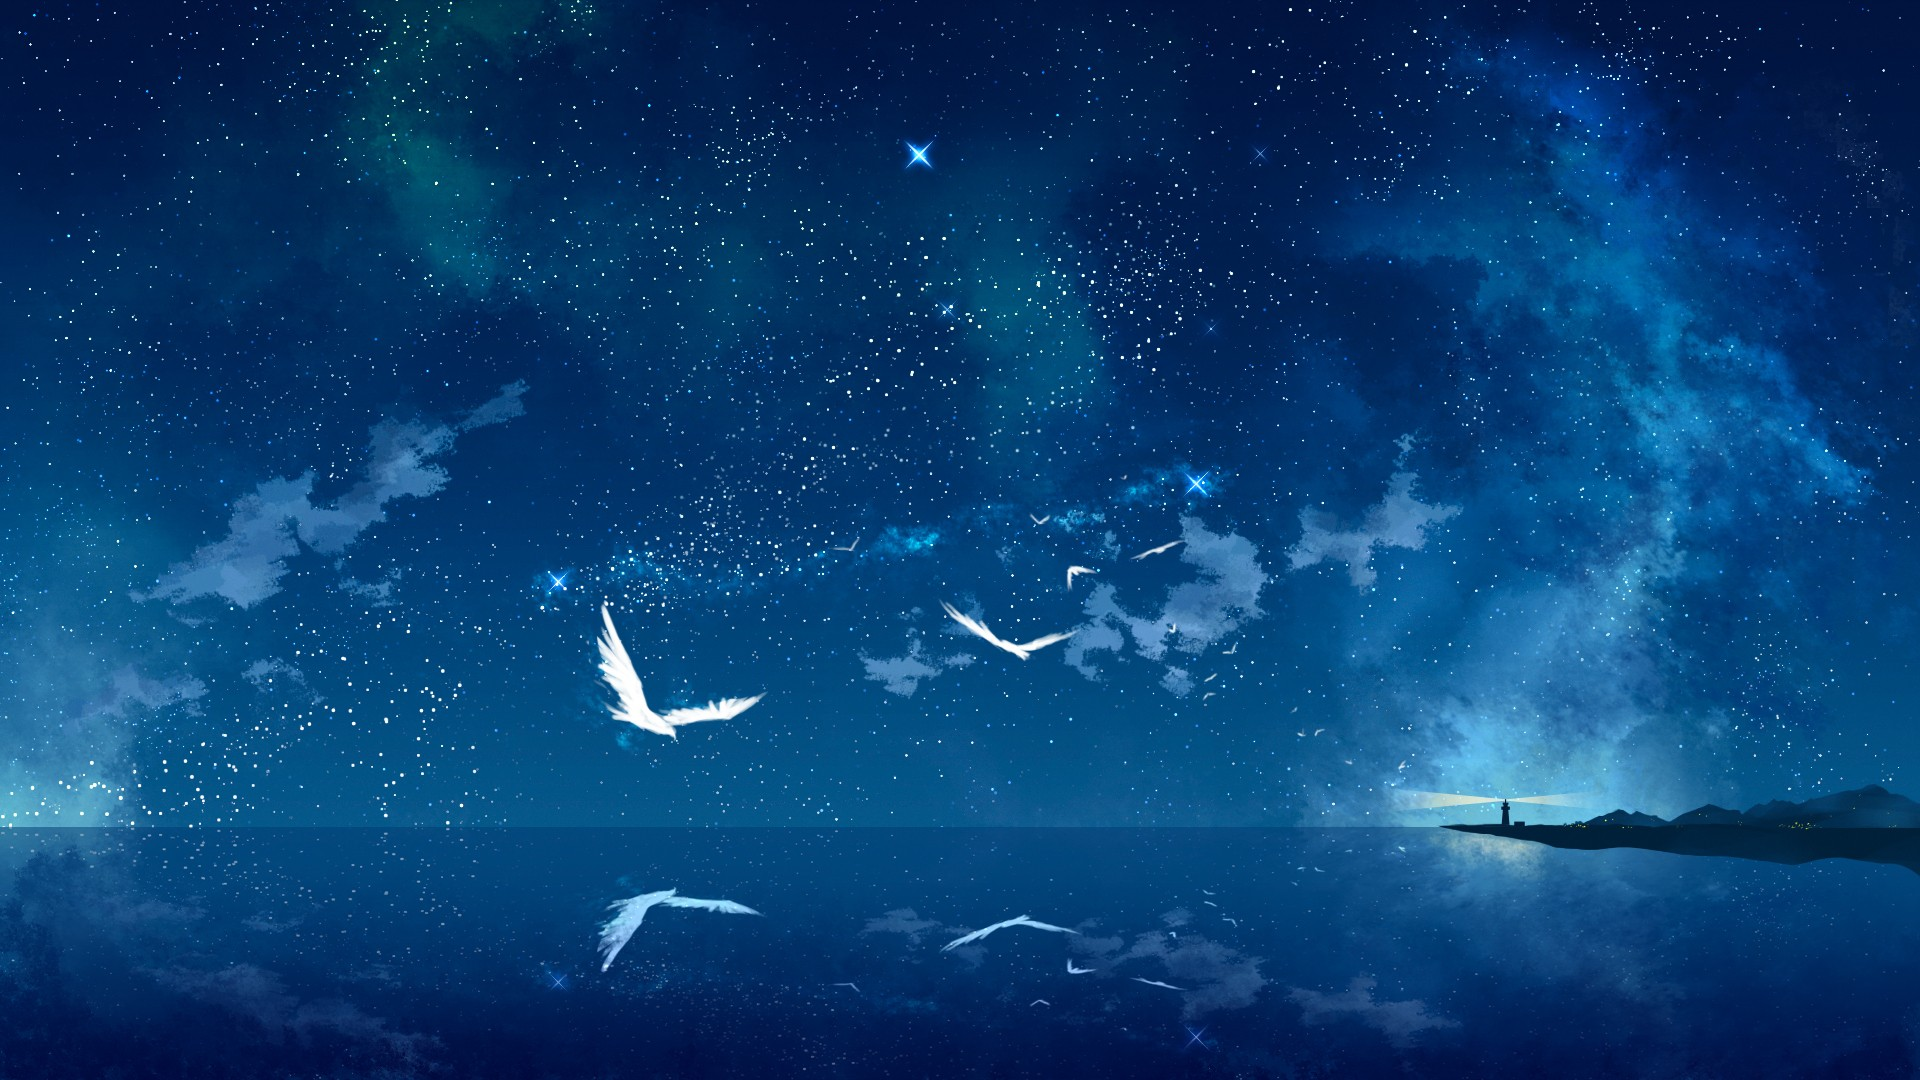 Anime Scenery wallpaper ·① Download free awesome ...